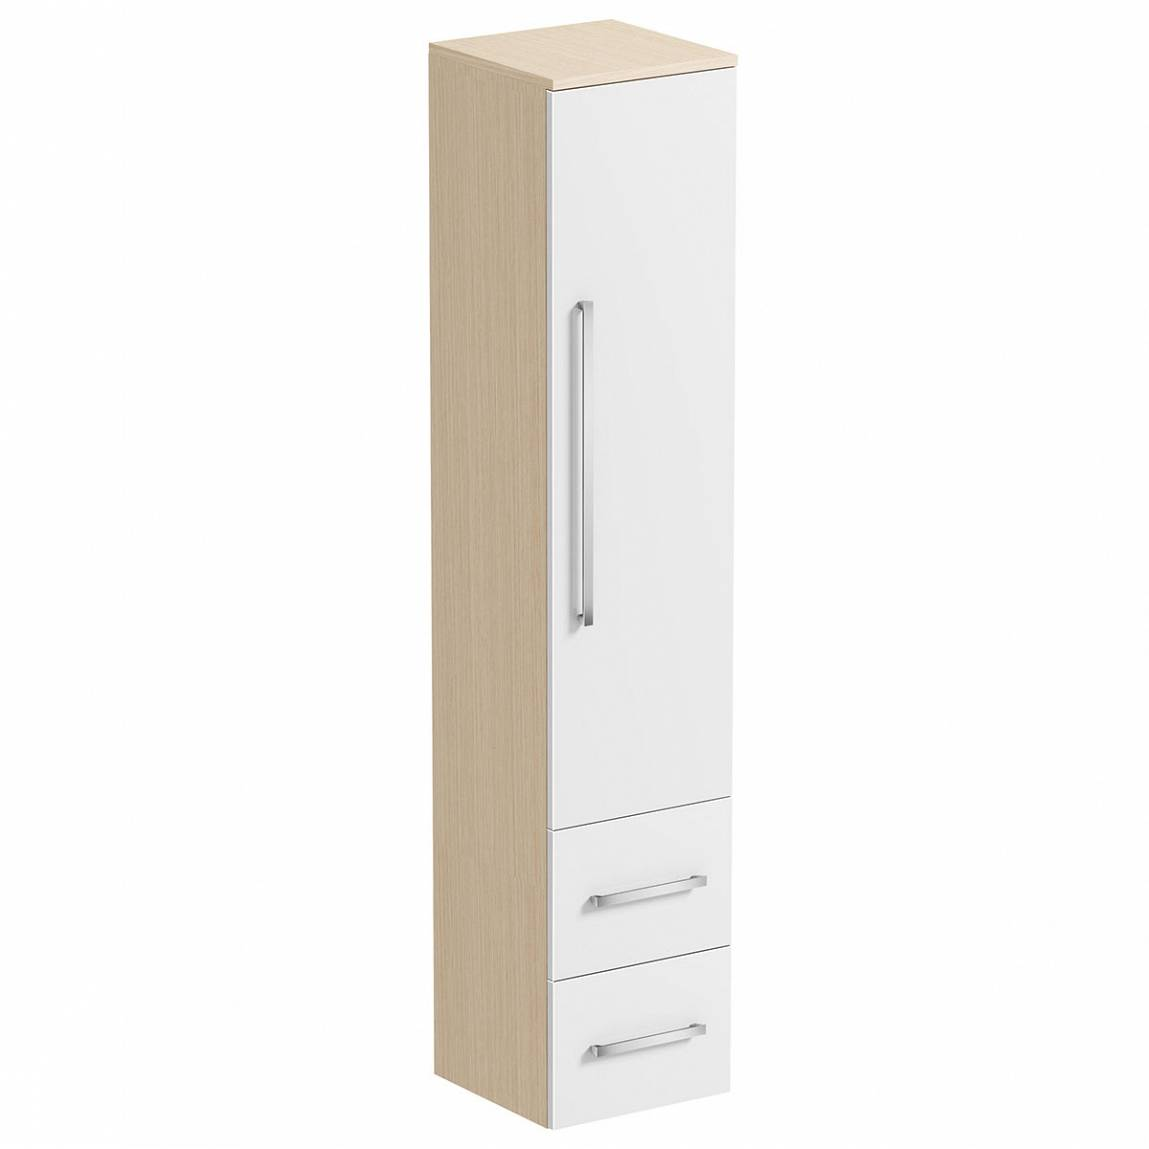 Image of Drift White & Oak Tall Cabinet